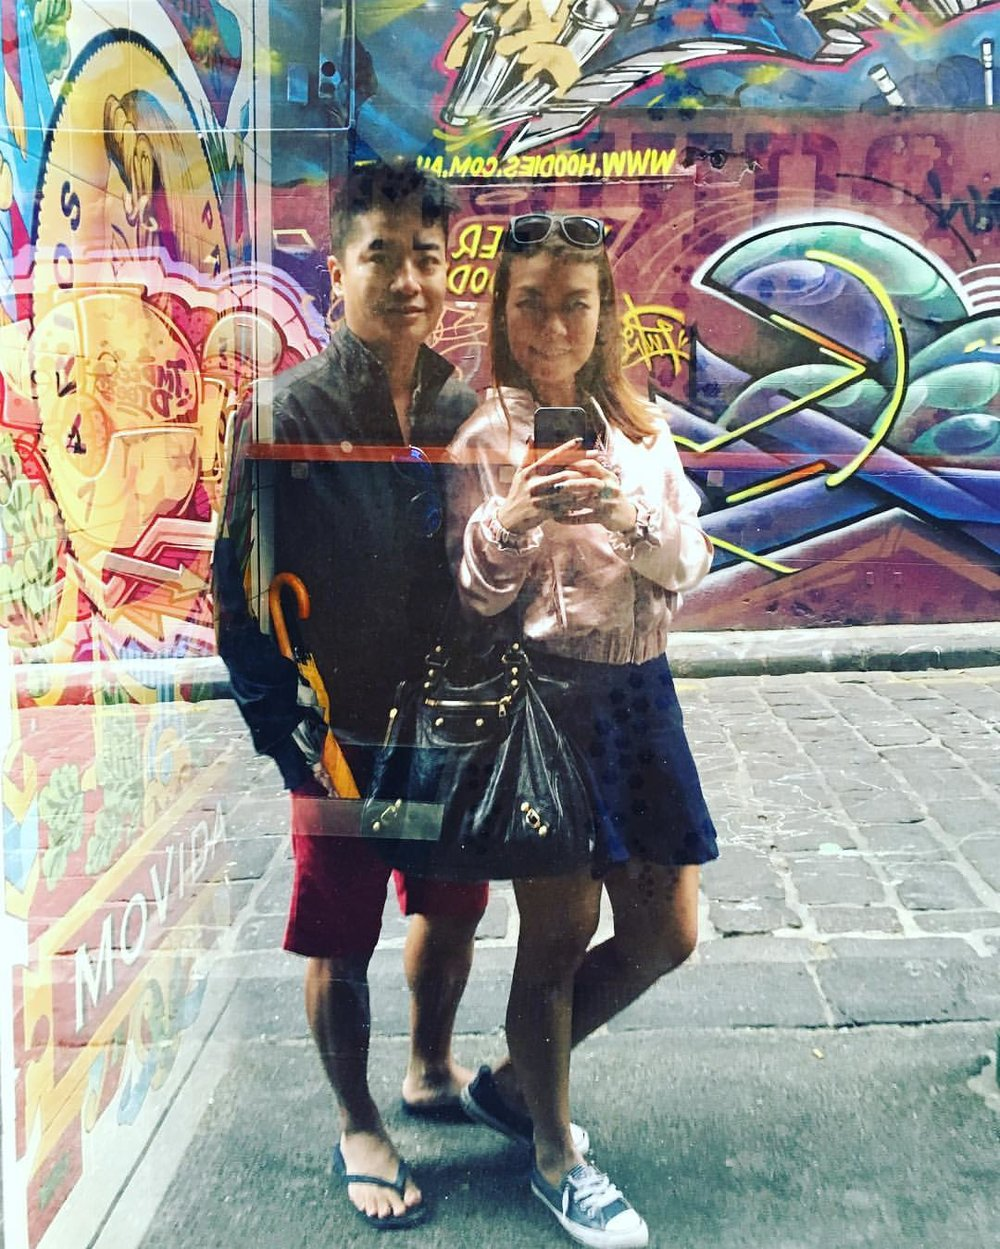 hosier lane mirror.jpg